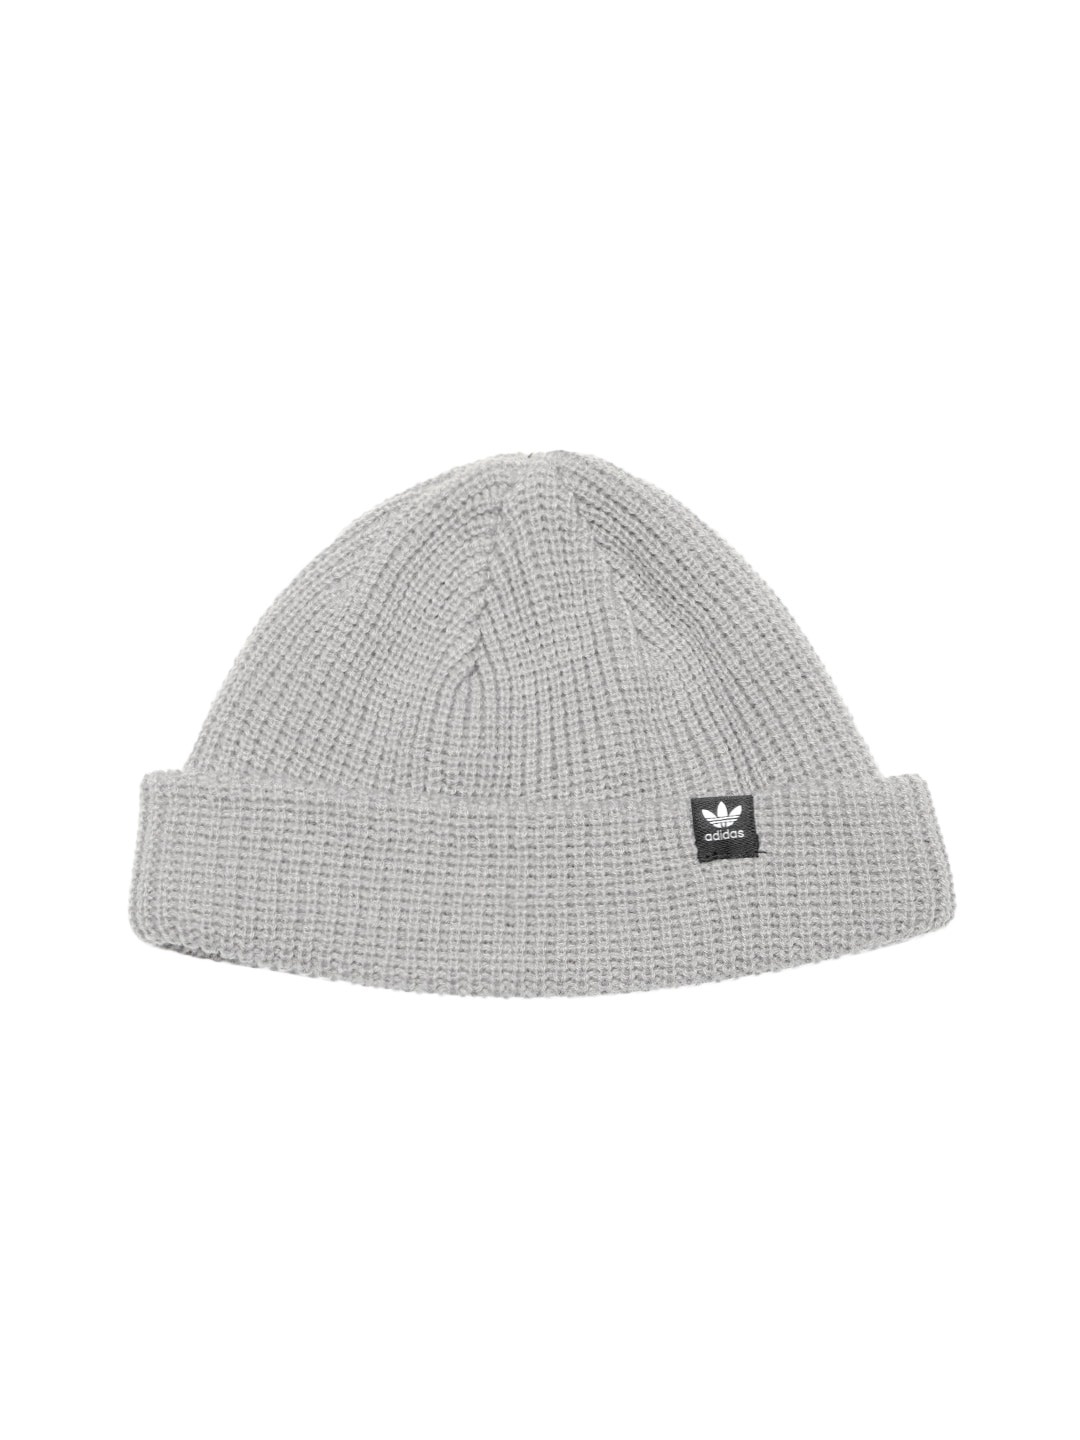 0b580b12a4b Buy ADIDAS Unisex Grey Solid Climawarm Beanie - Caps for Unisex ...